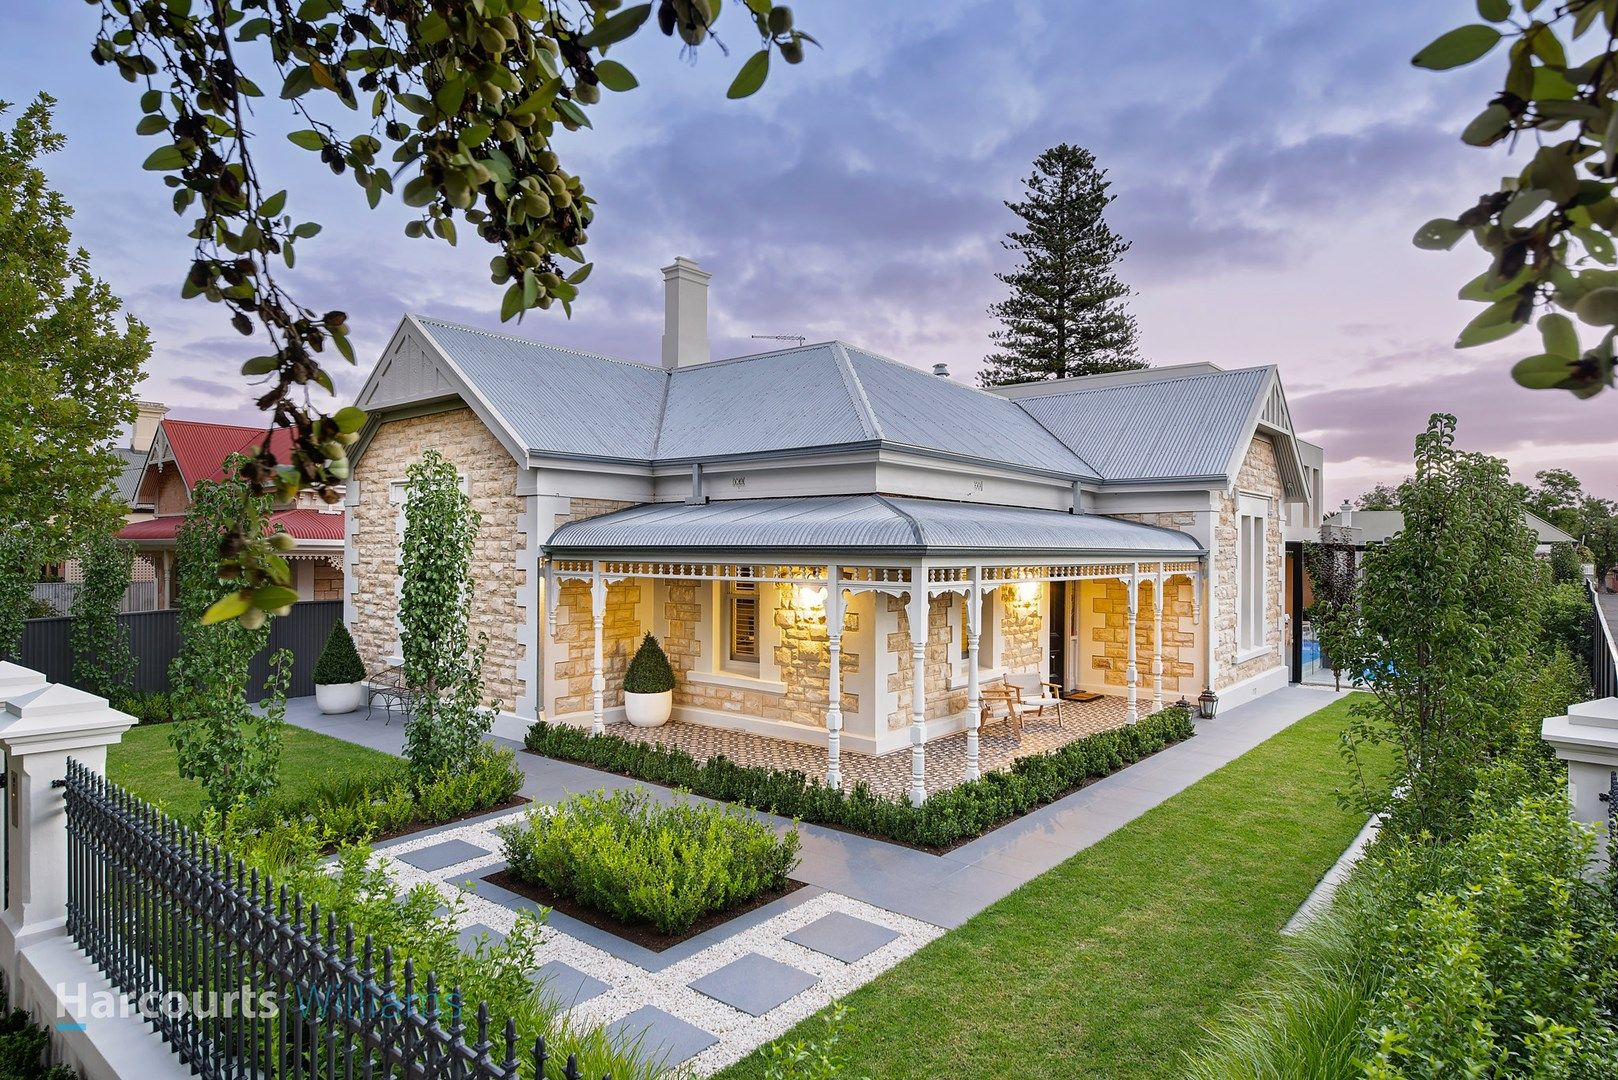 House for sale at 42 Palmerston Road, Unley SA 5061. View property on house plans in uk, house plans in pa, house plans in ms, house plans in nc, house plans in pk, house plans in mn, house plans in mt,